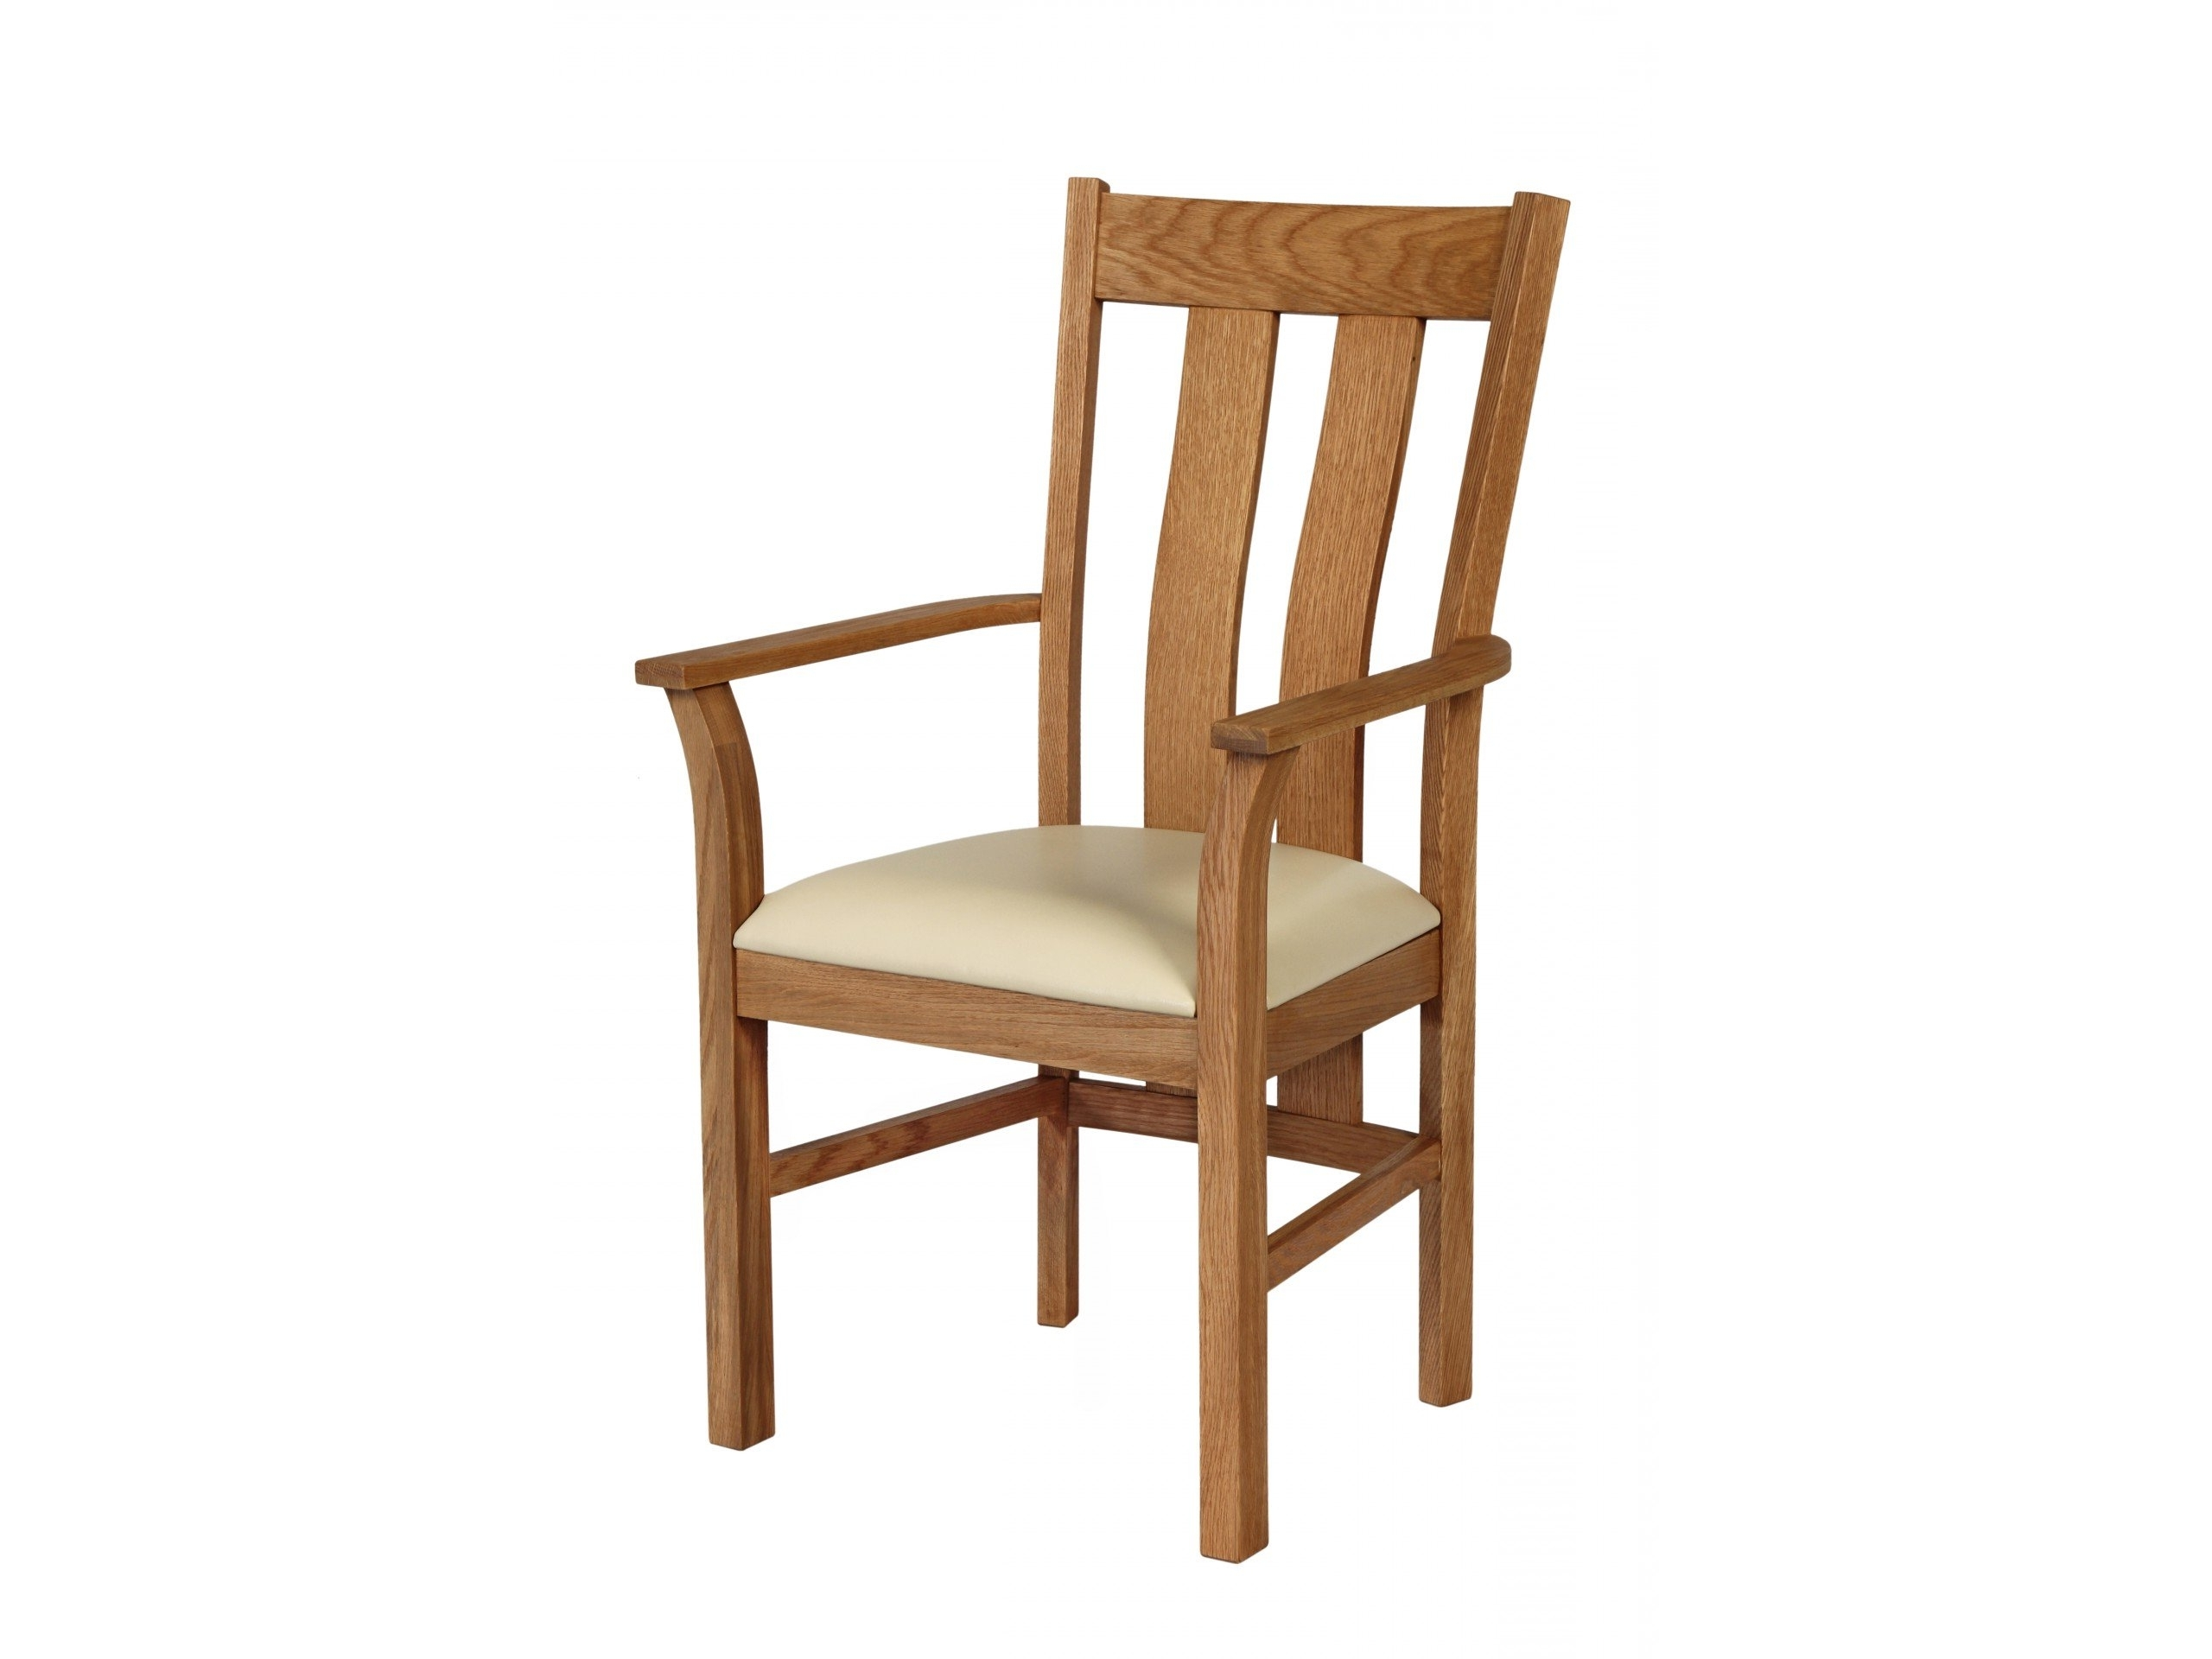 Cream Leather Dining Chairs Inside Widely Used Churchill Cream Leather Oak Carver Dining Chair (View 7 of 25)